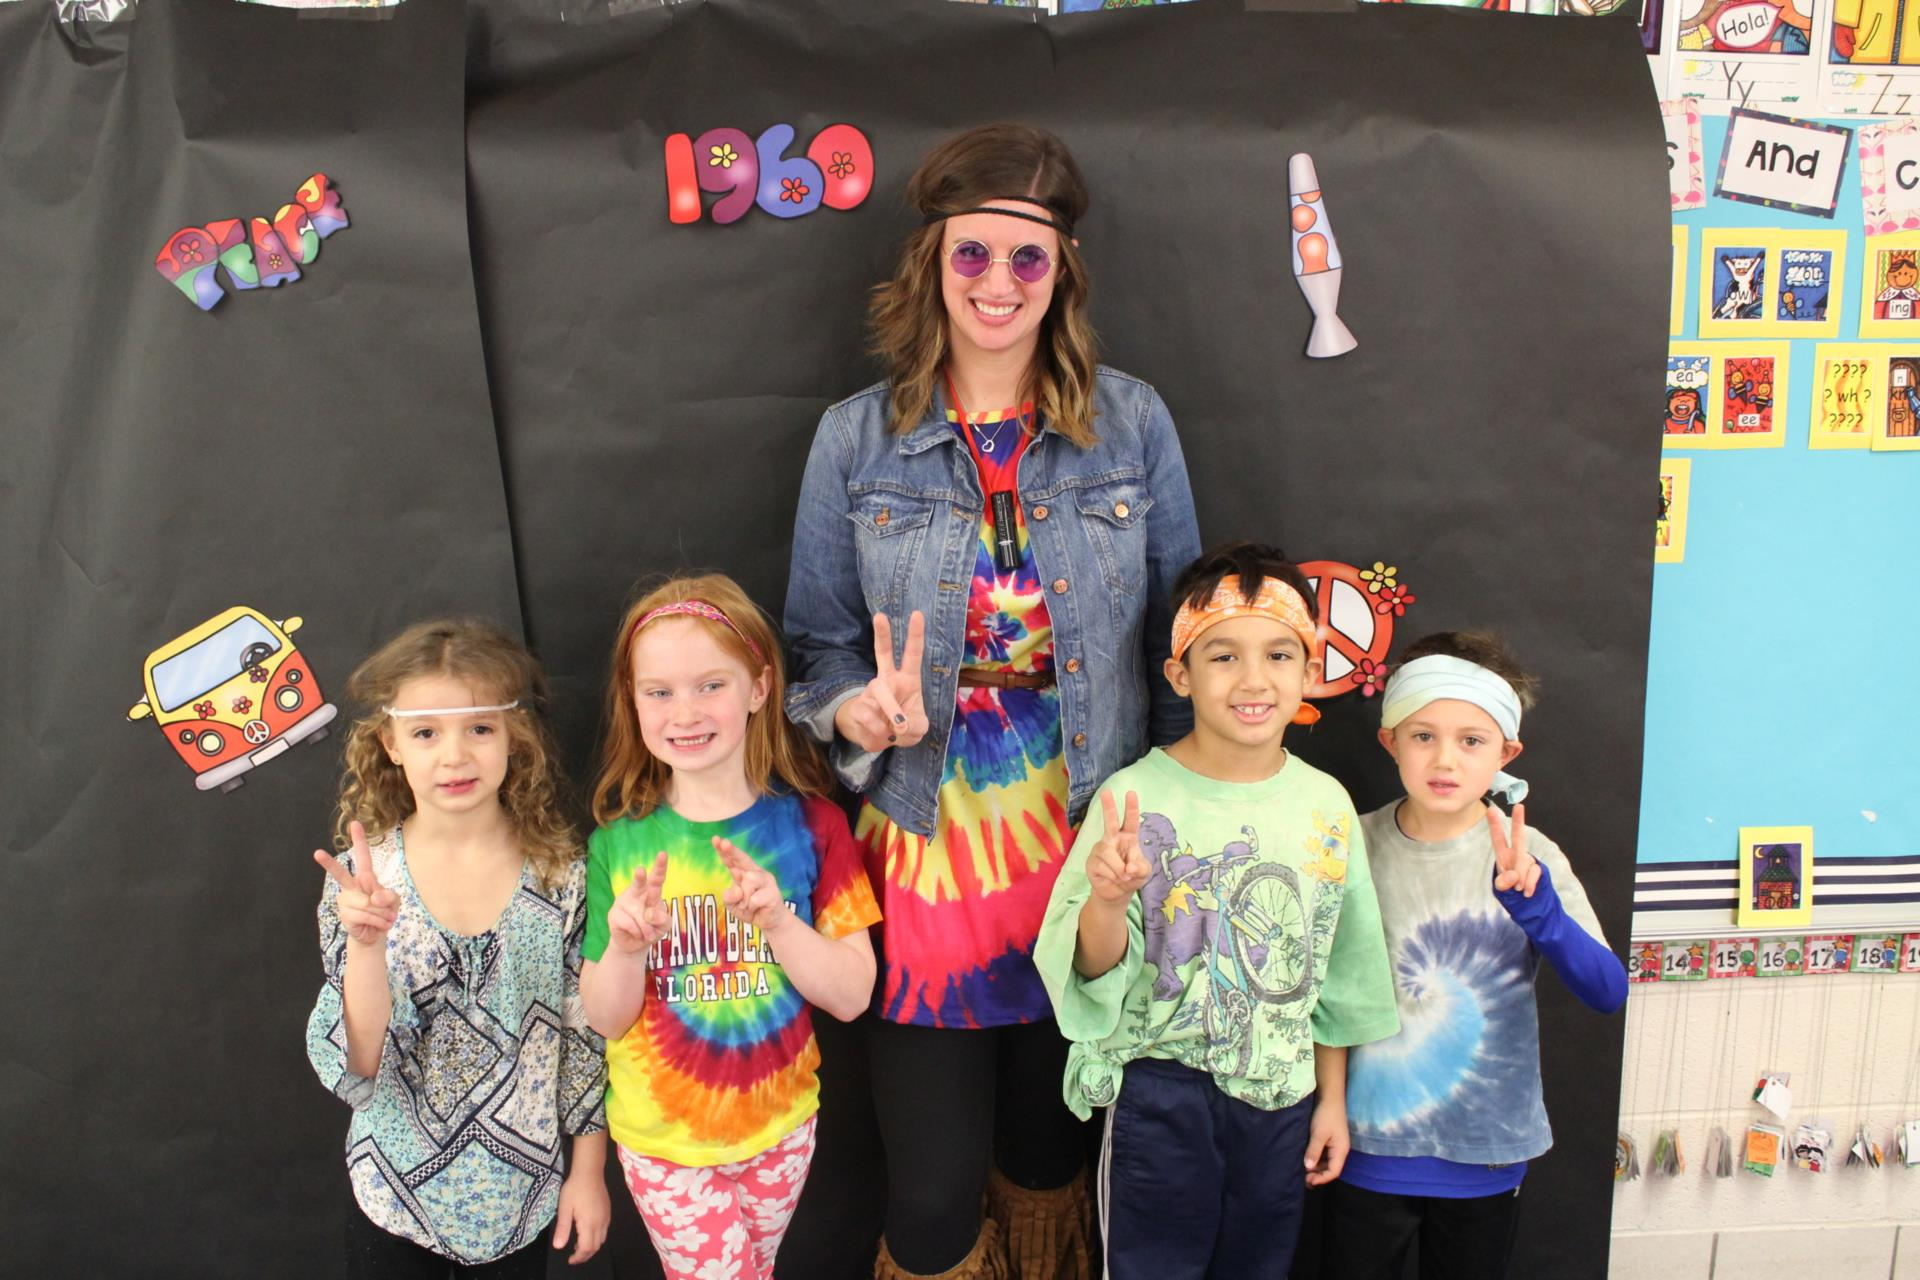 Hilton first grade students and staff celebrate Sixties Day